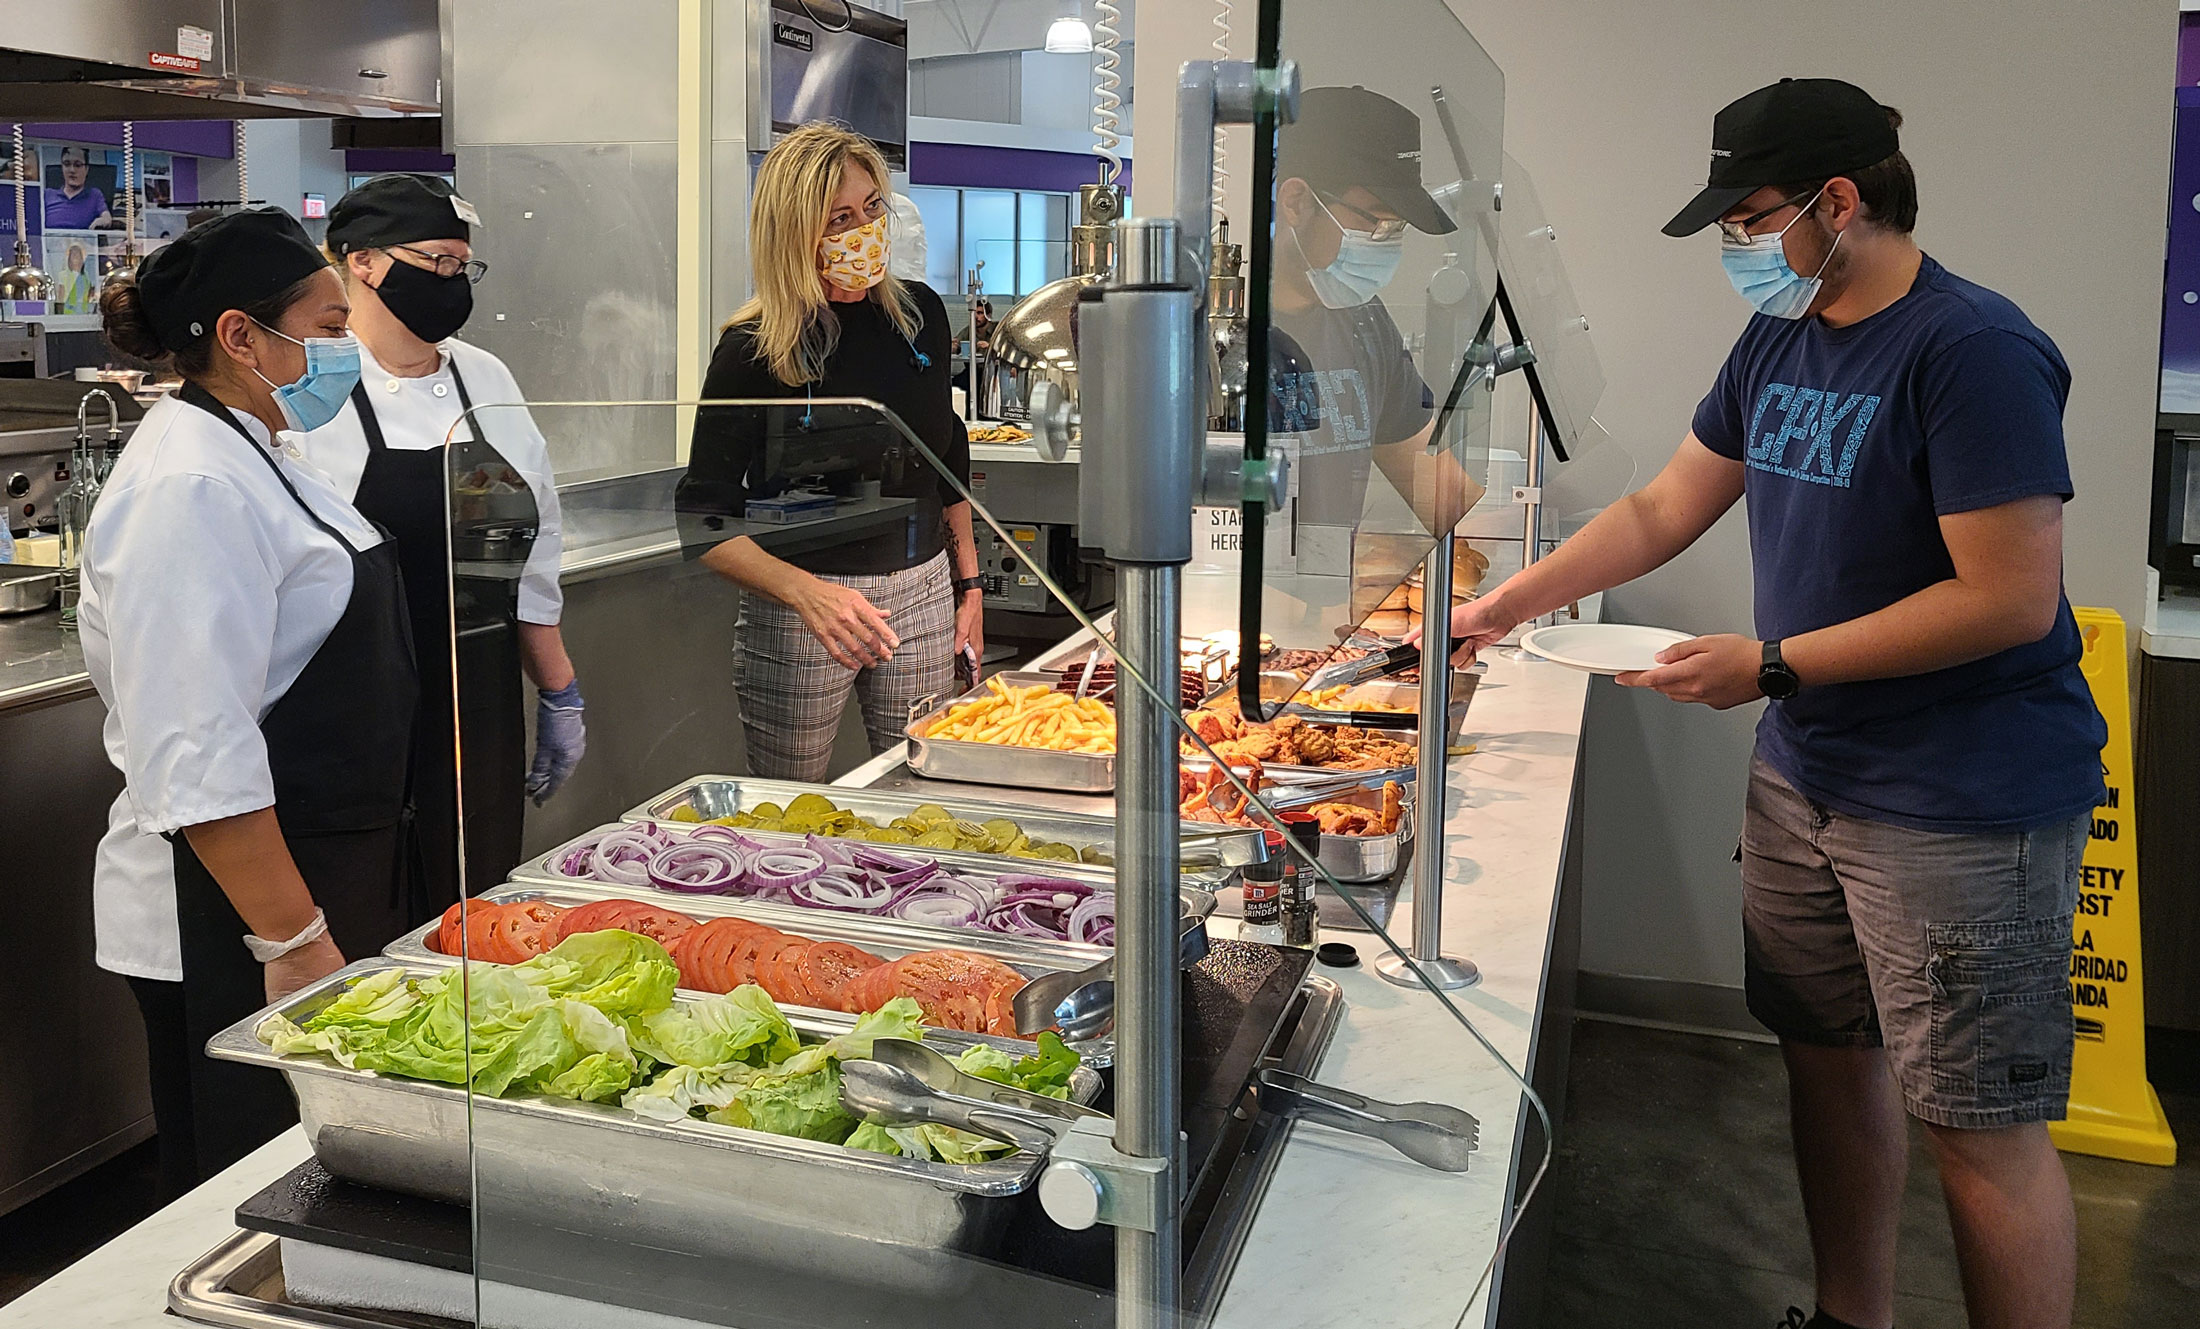 New dining options, leadership invigorate campus food choices